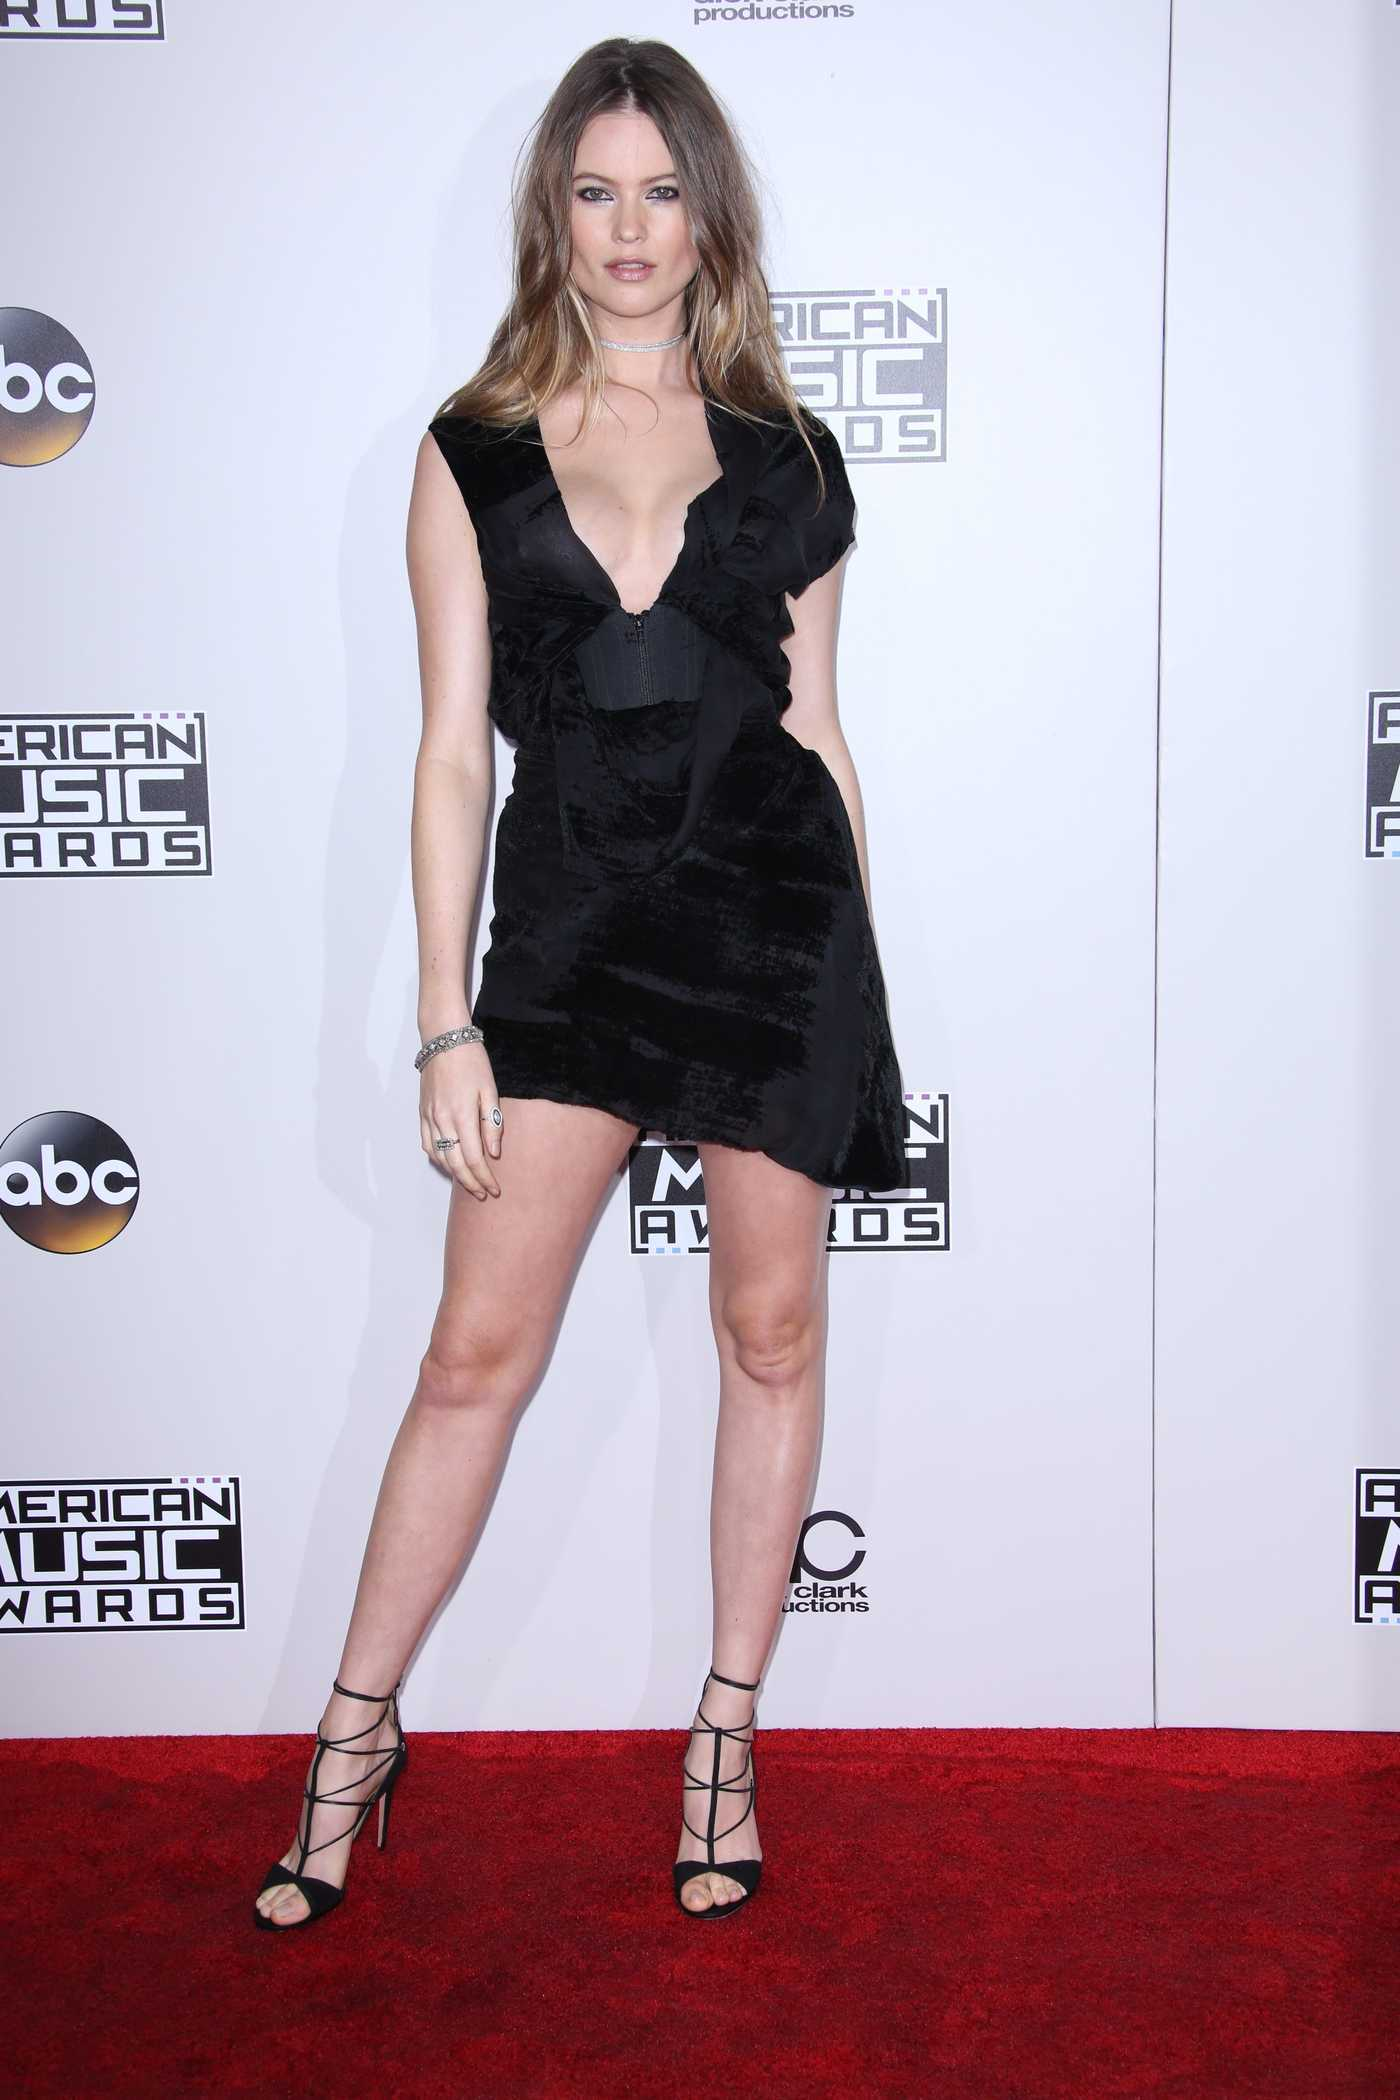 Behati Prinsloo at the 2016 American Music Awards at the Microsoft Theater in Los Angeles 11/20/2016